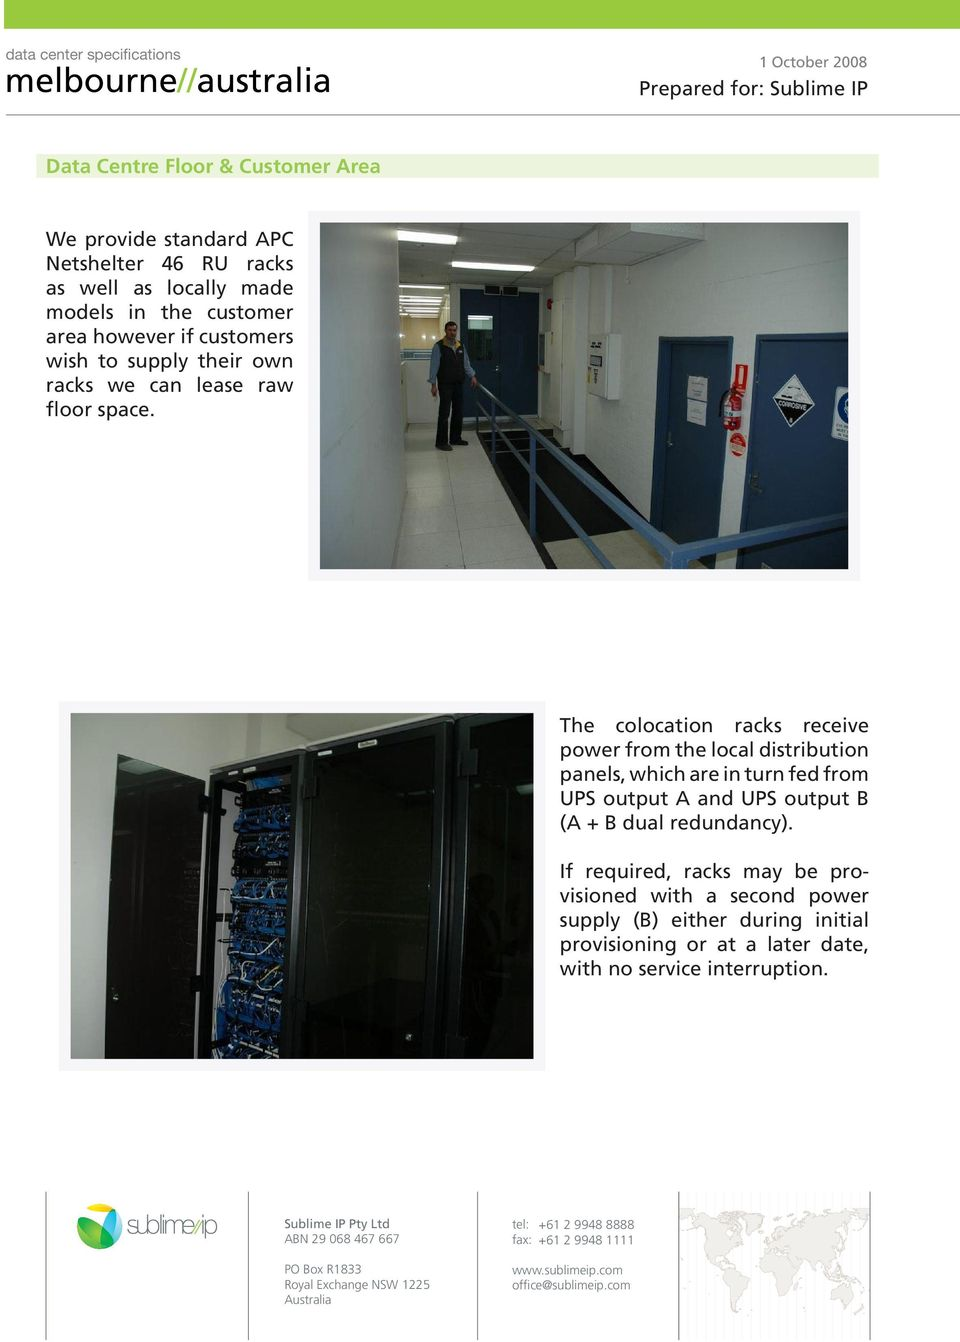 The colocation racks receive power from the local distribution panels, which are in turn fed from UPS output A and UPS output B (A